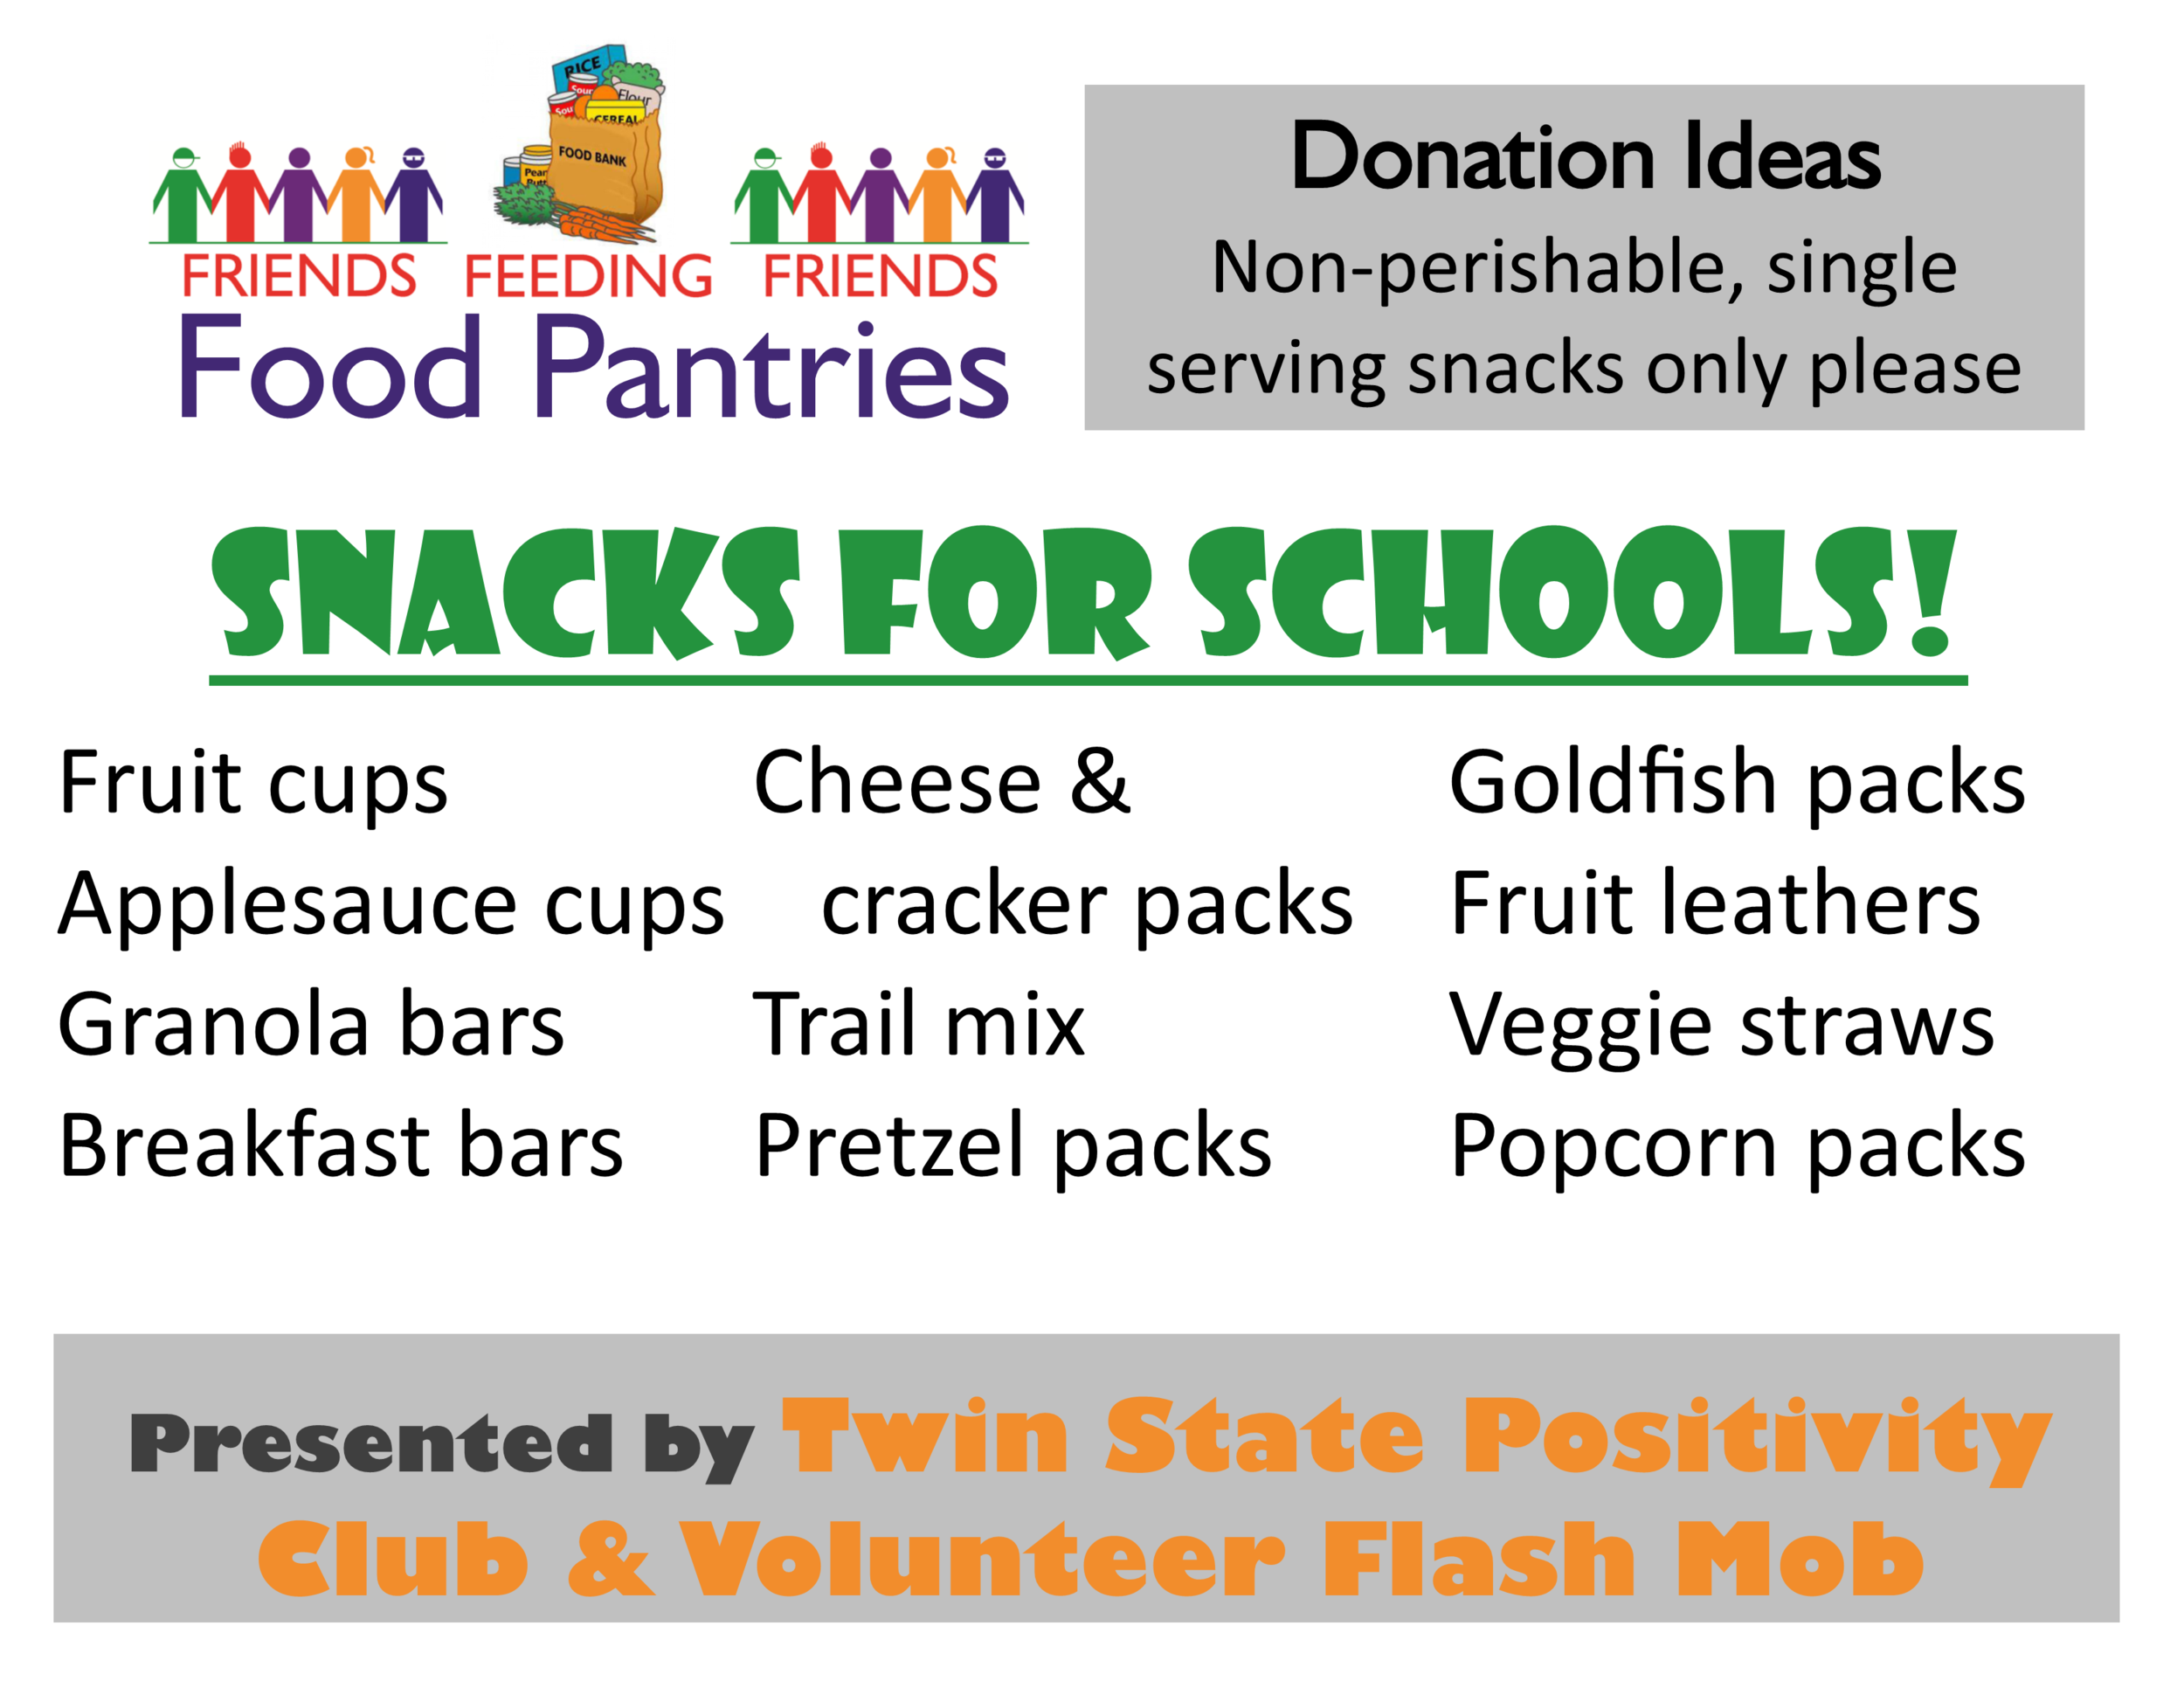 Snacks for Schools March 2018 Donation Ideas.png